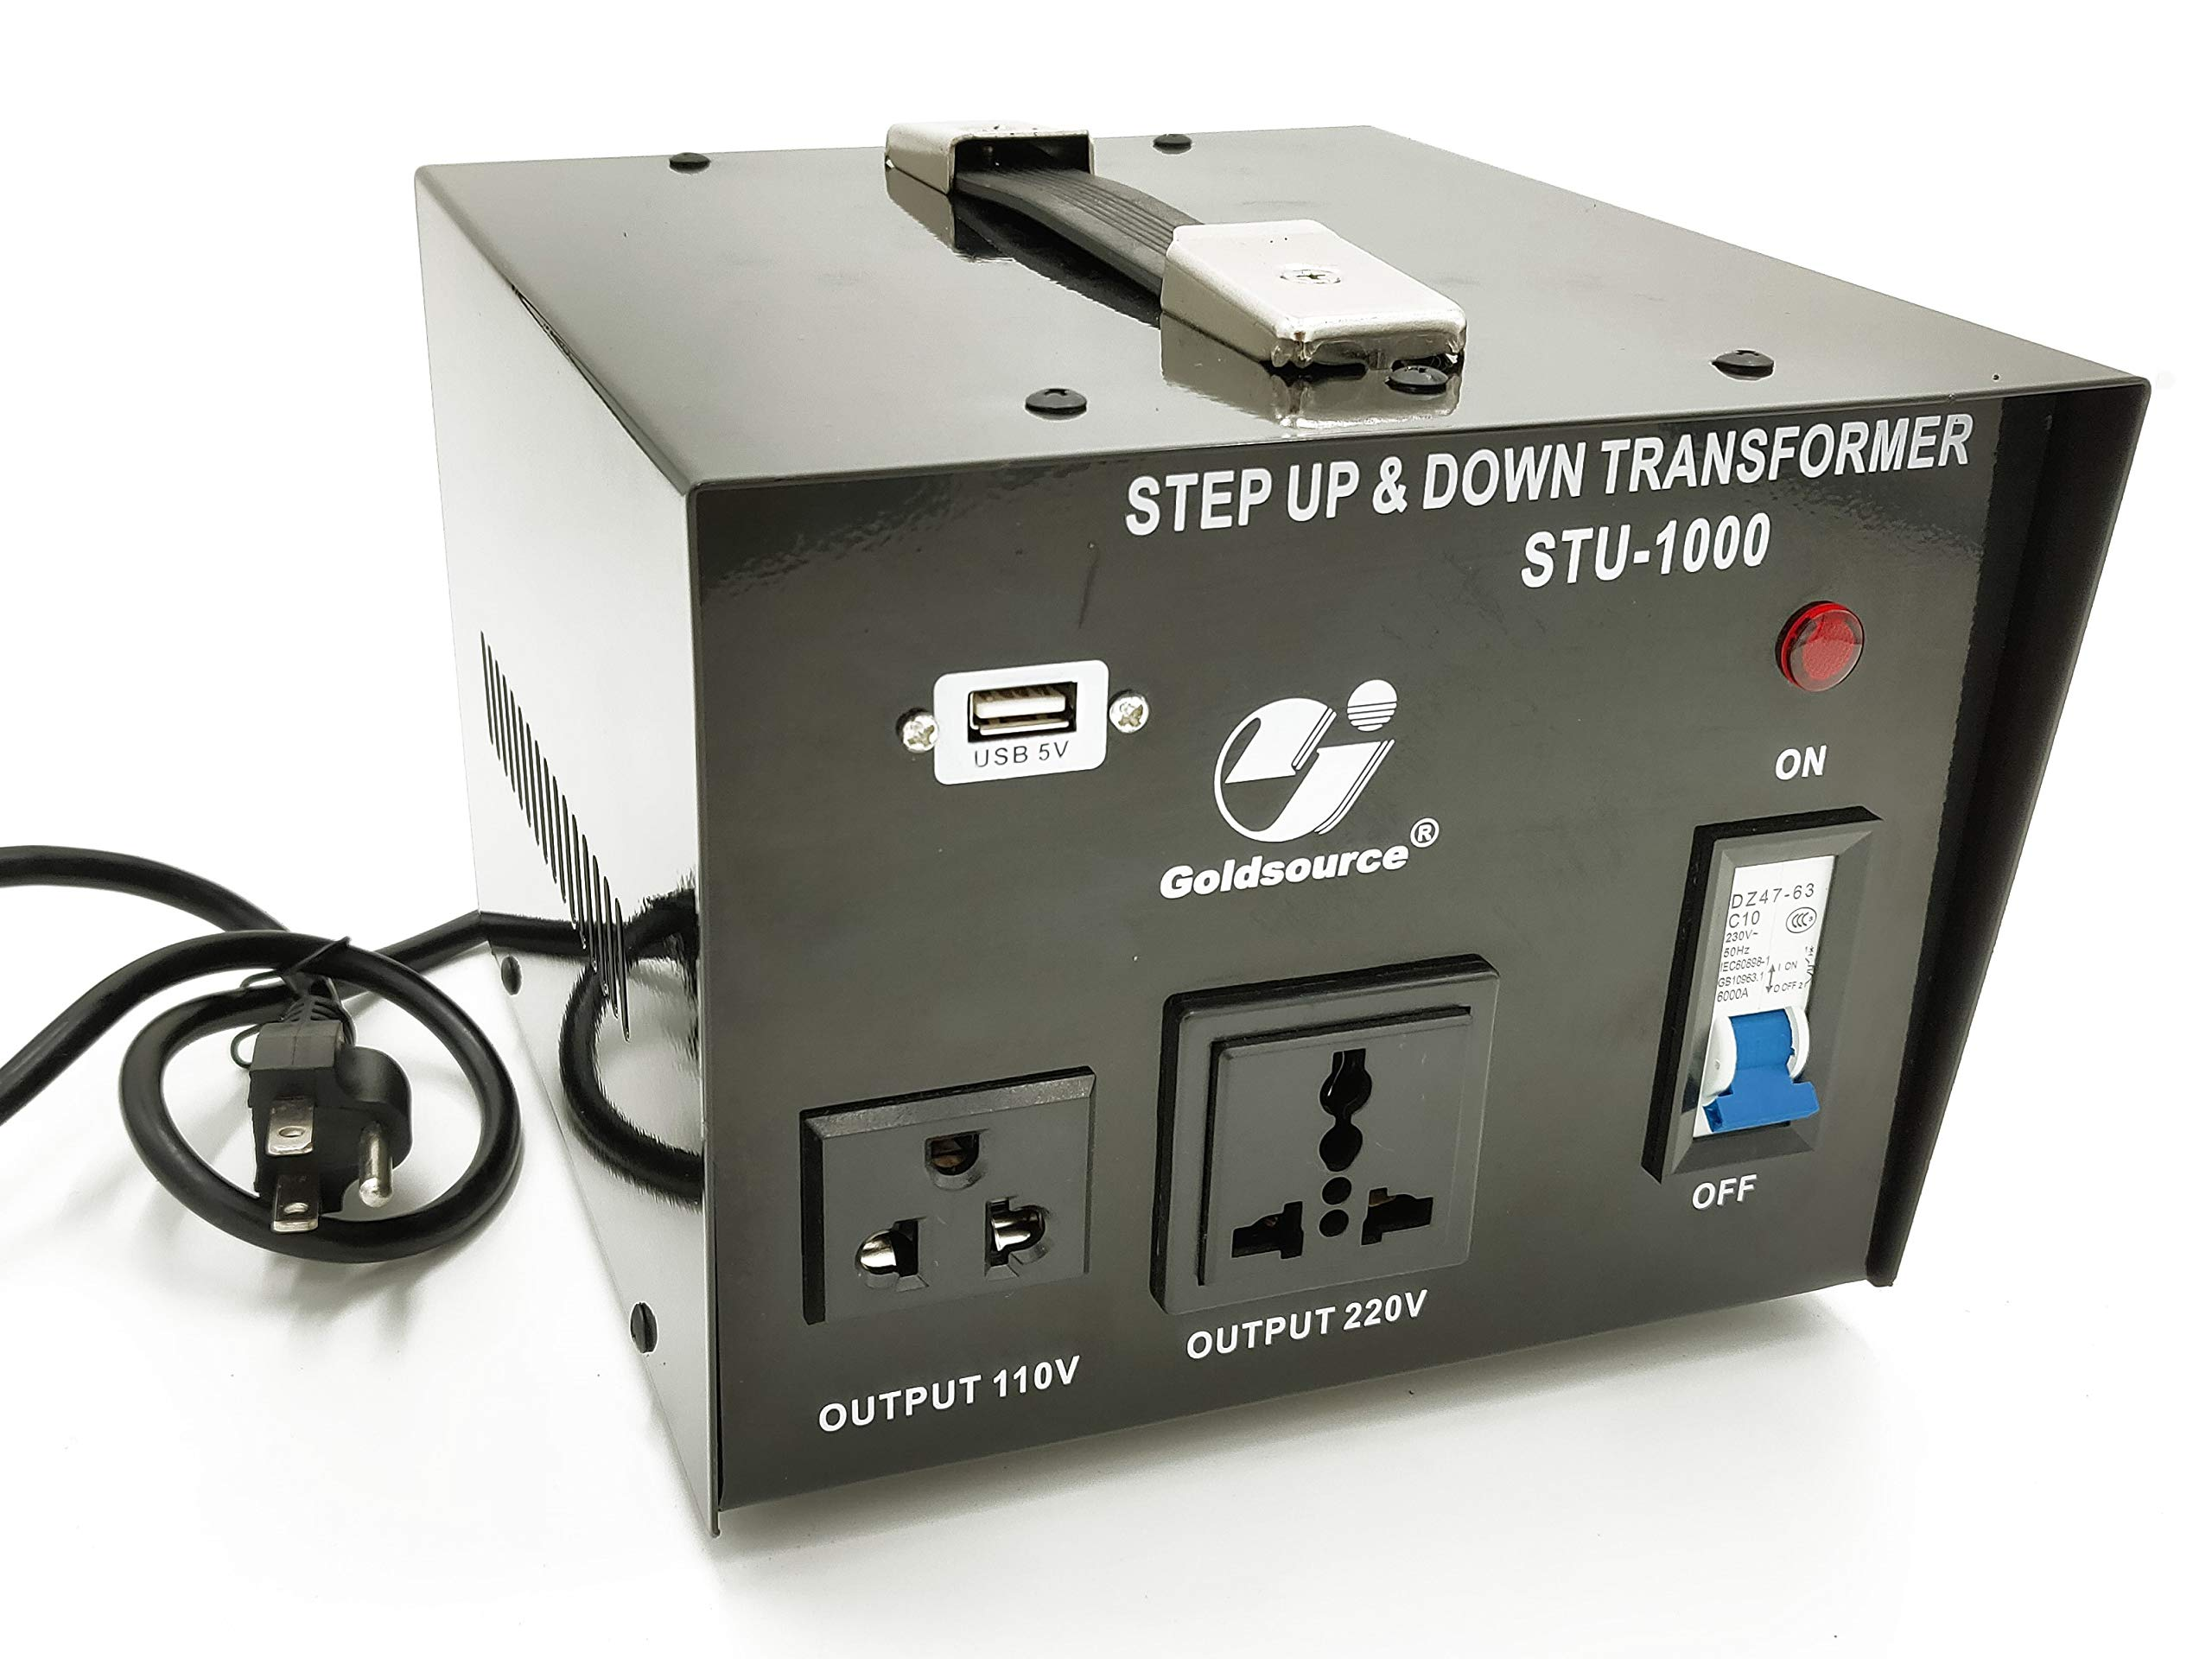 1000W Auto Step Up & Step Down Voltage Transformer Converter, STU-C Series Heavy-duty AC 110/220V Converter with US Standard, Universal, Schuko AC Outlets & DC 5V USB Port by Goldsource